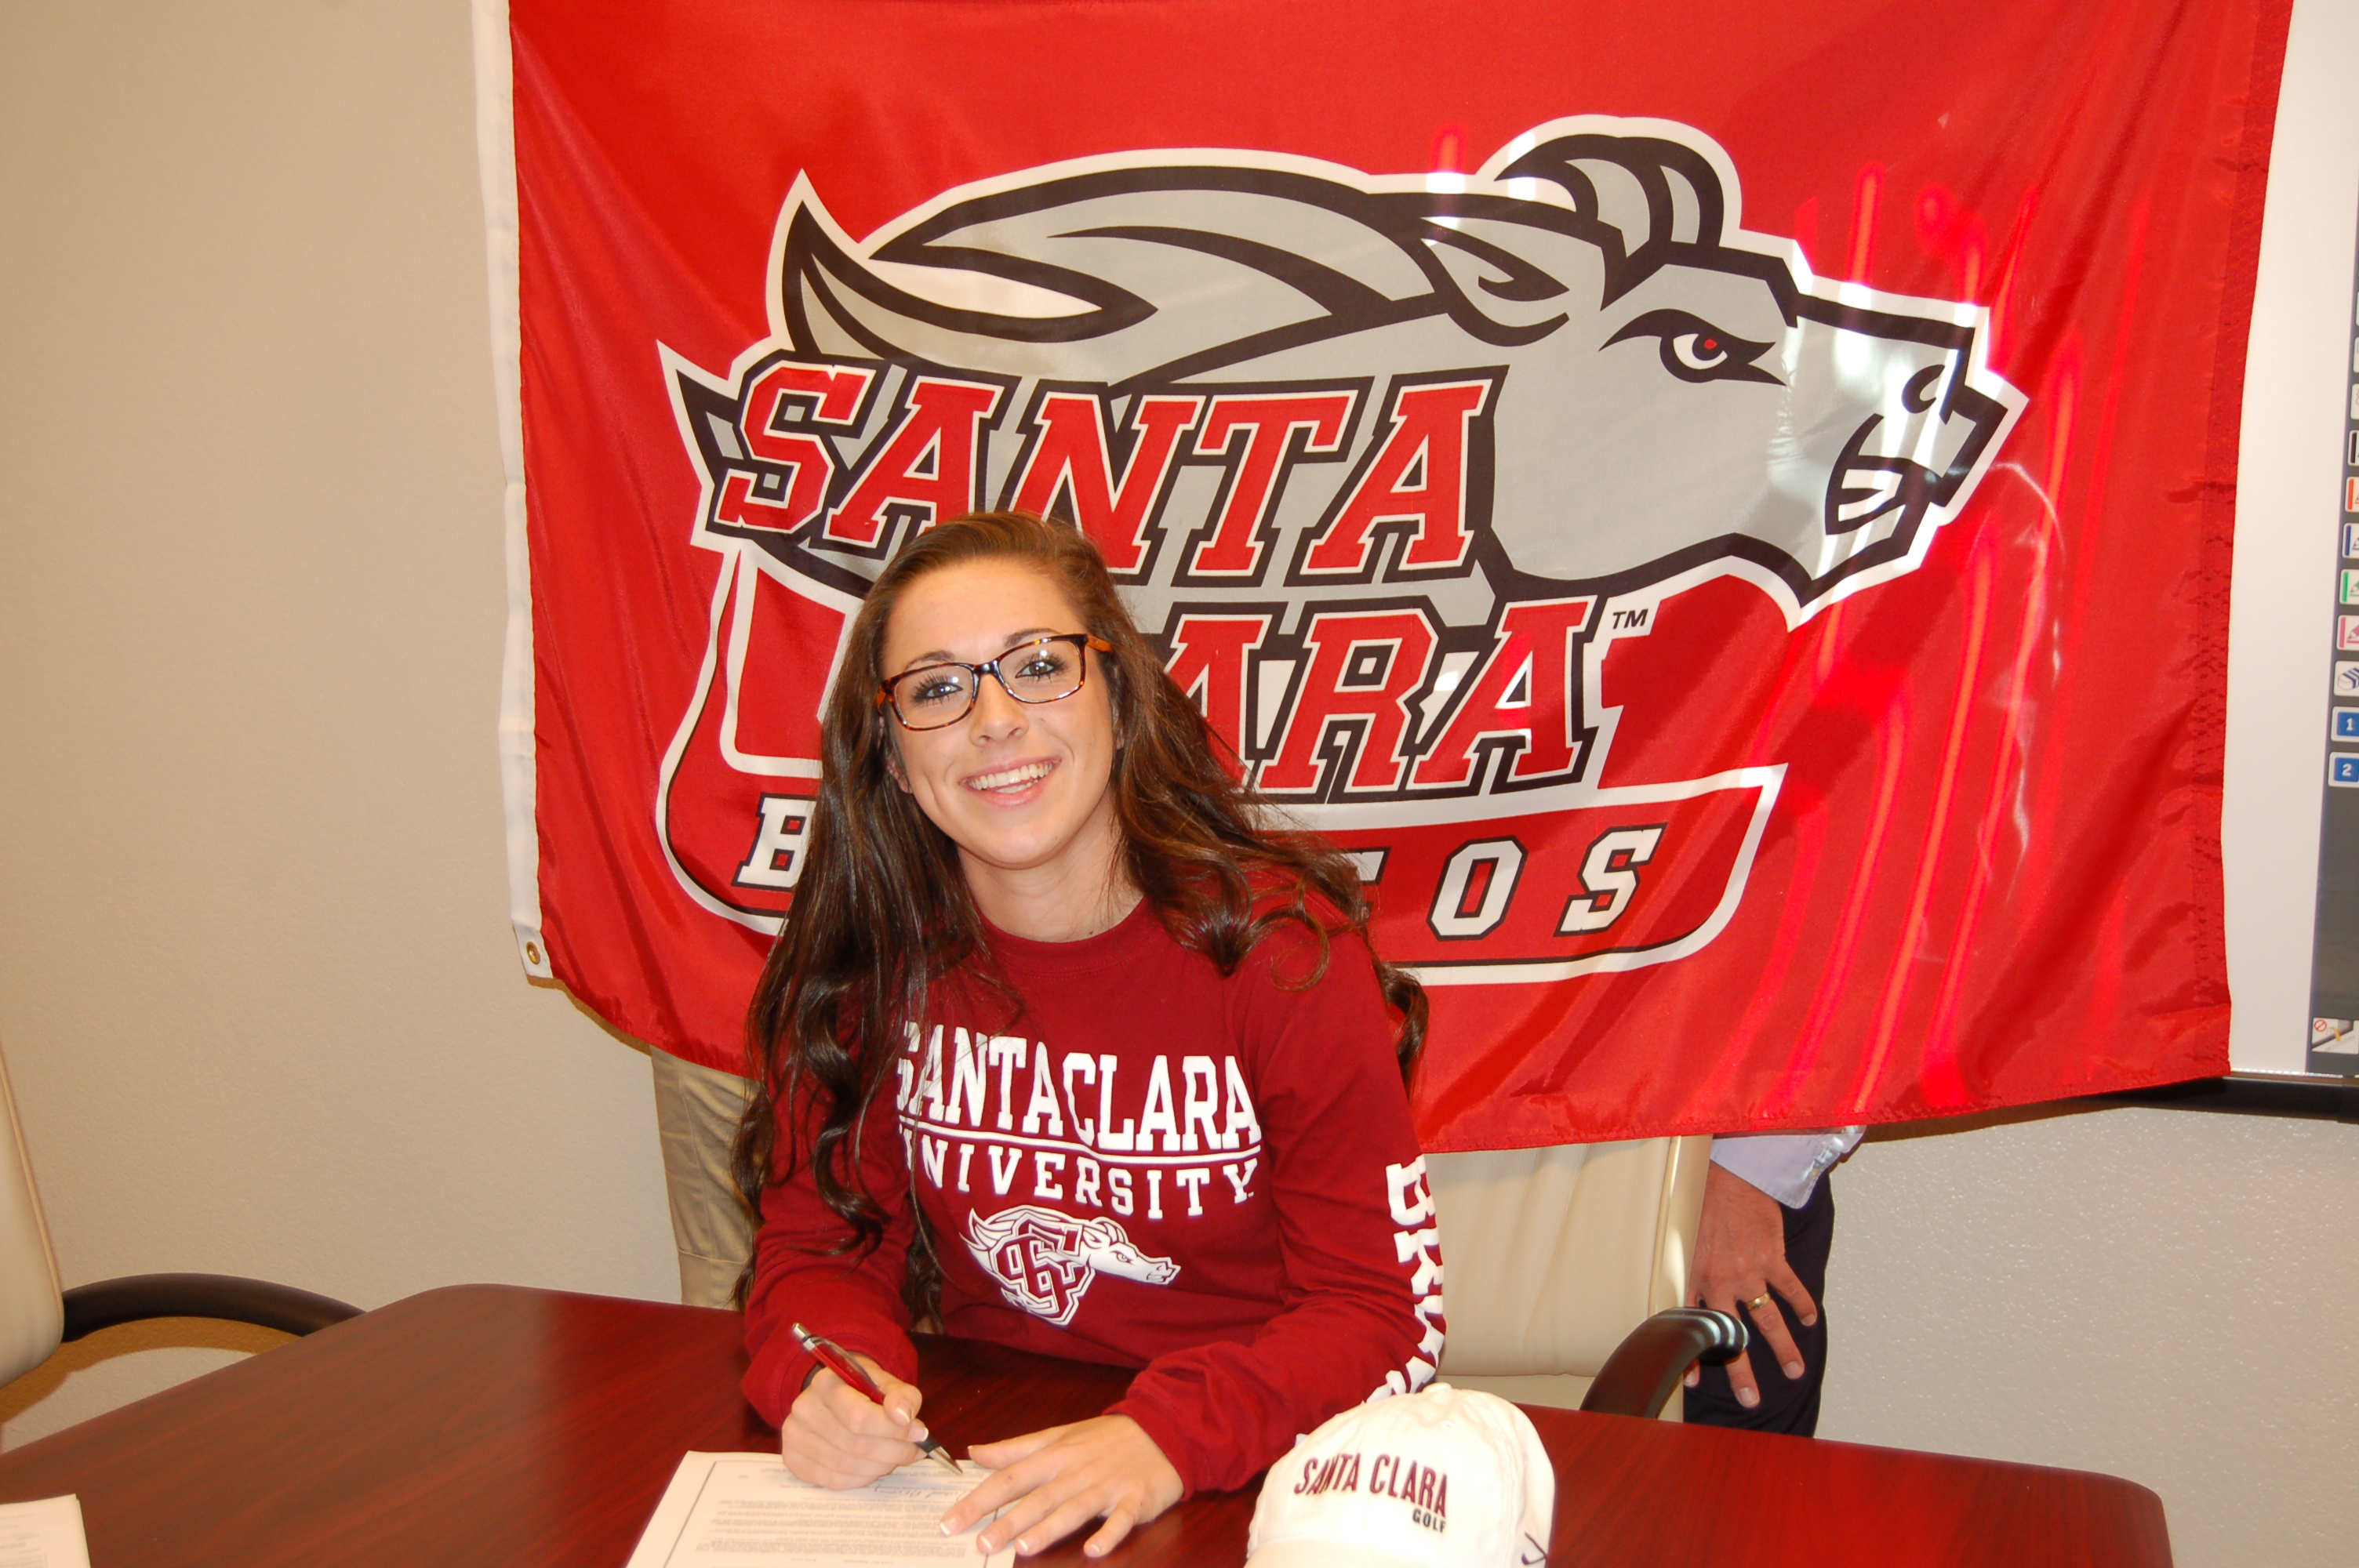 Anne Freman signs with Santa Clara